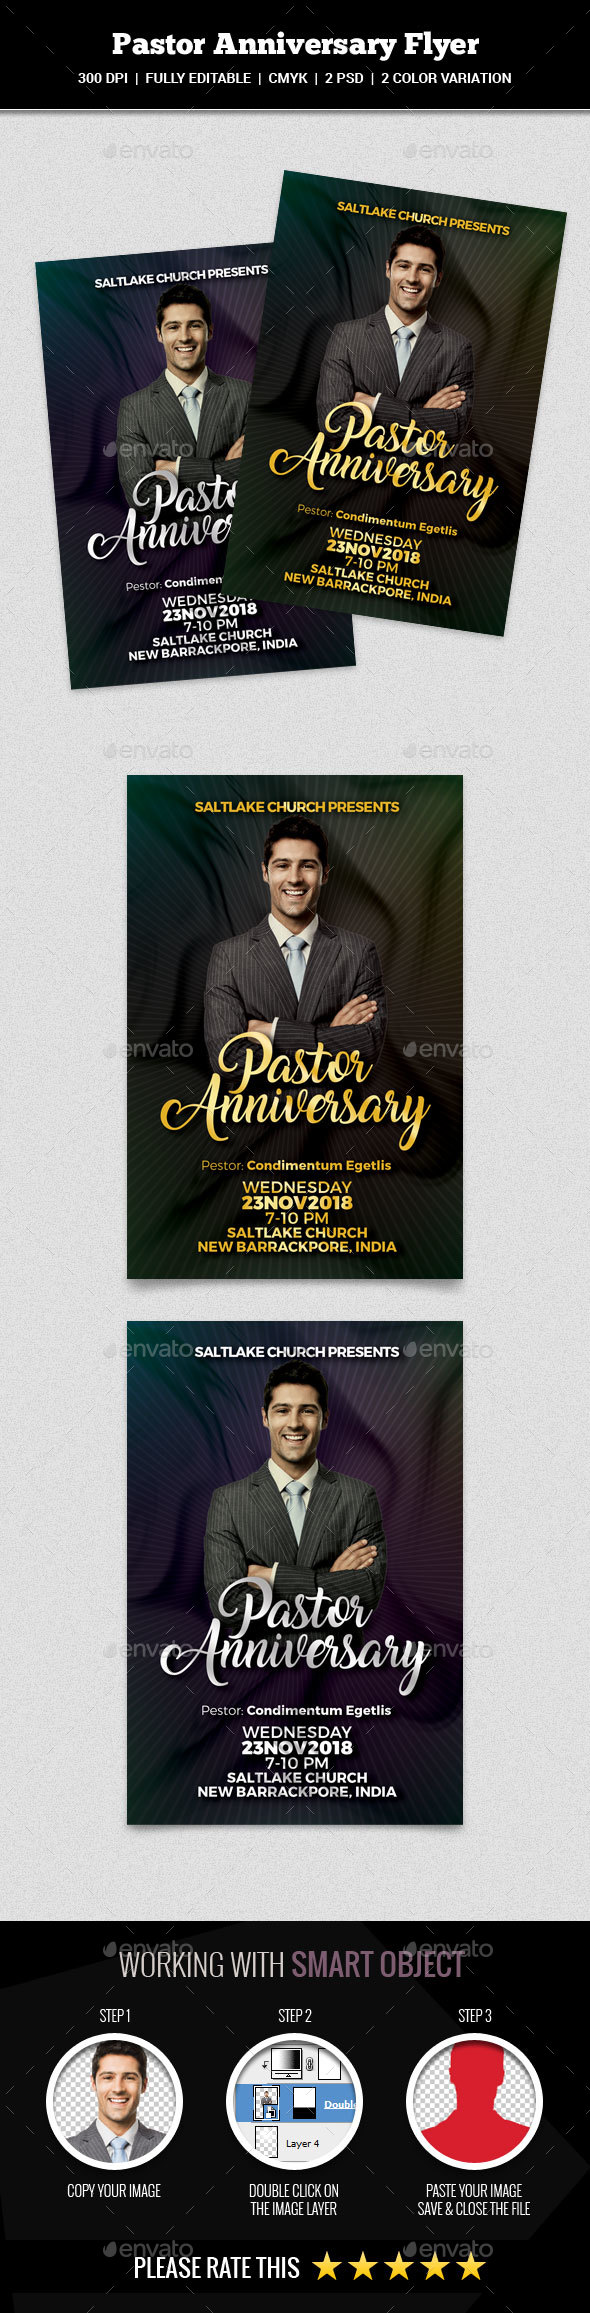 Pastor Anniversary Flyer - Church Flyers